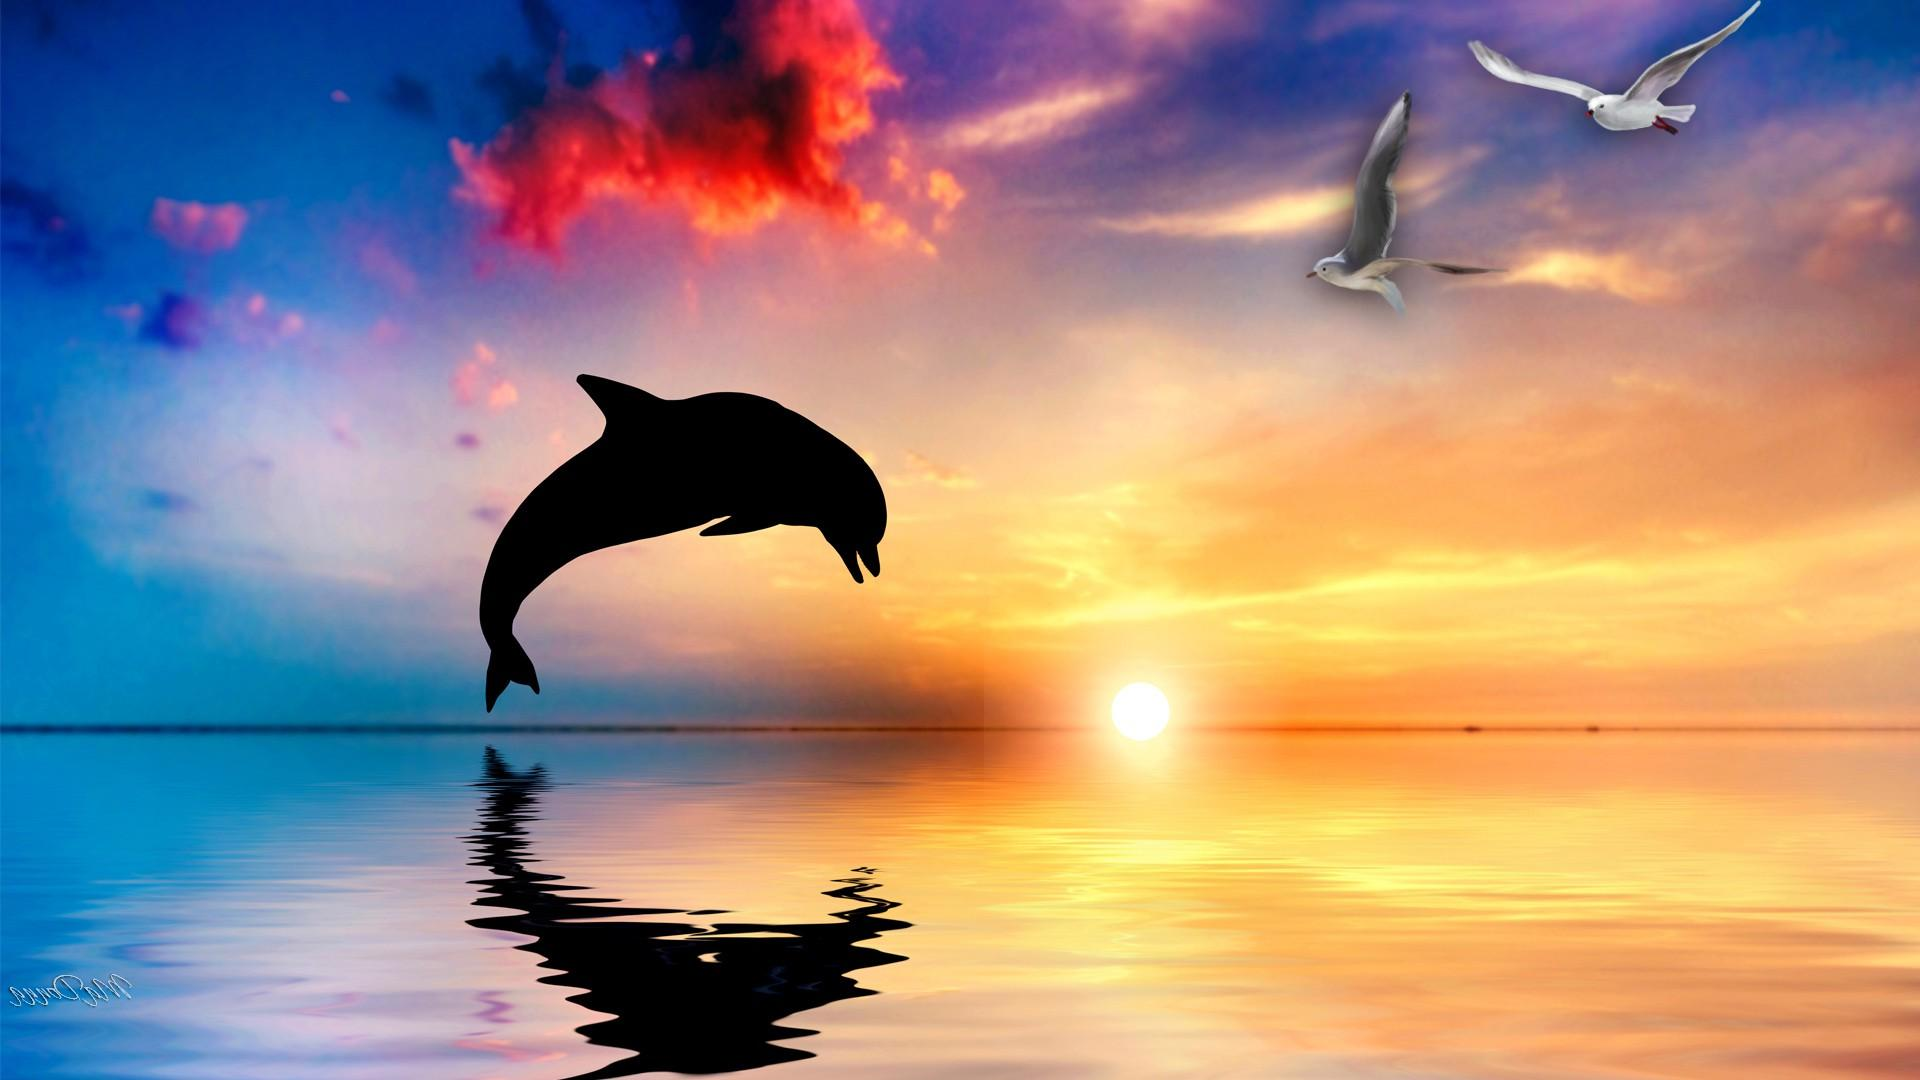 Dolphin Backgrounds 1920x1080